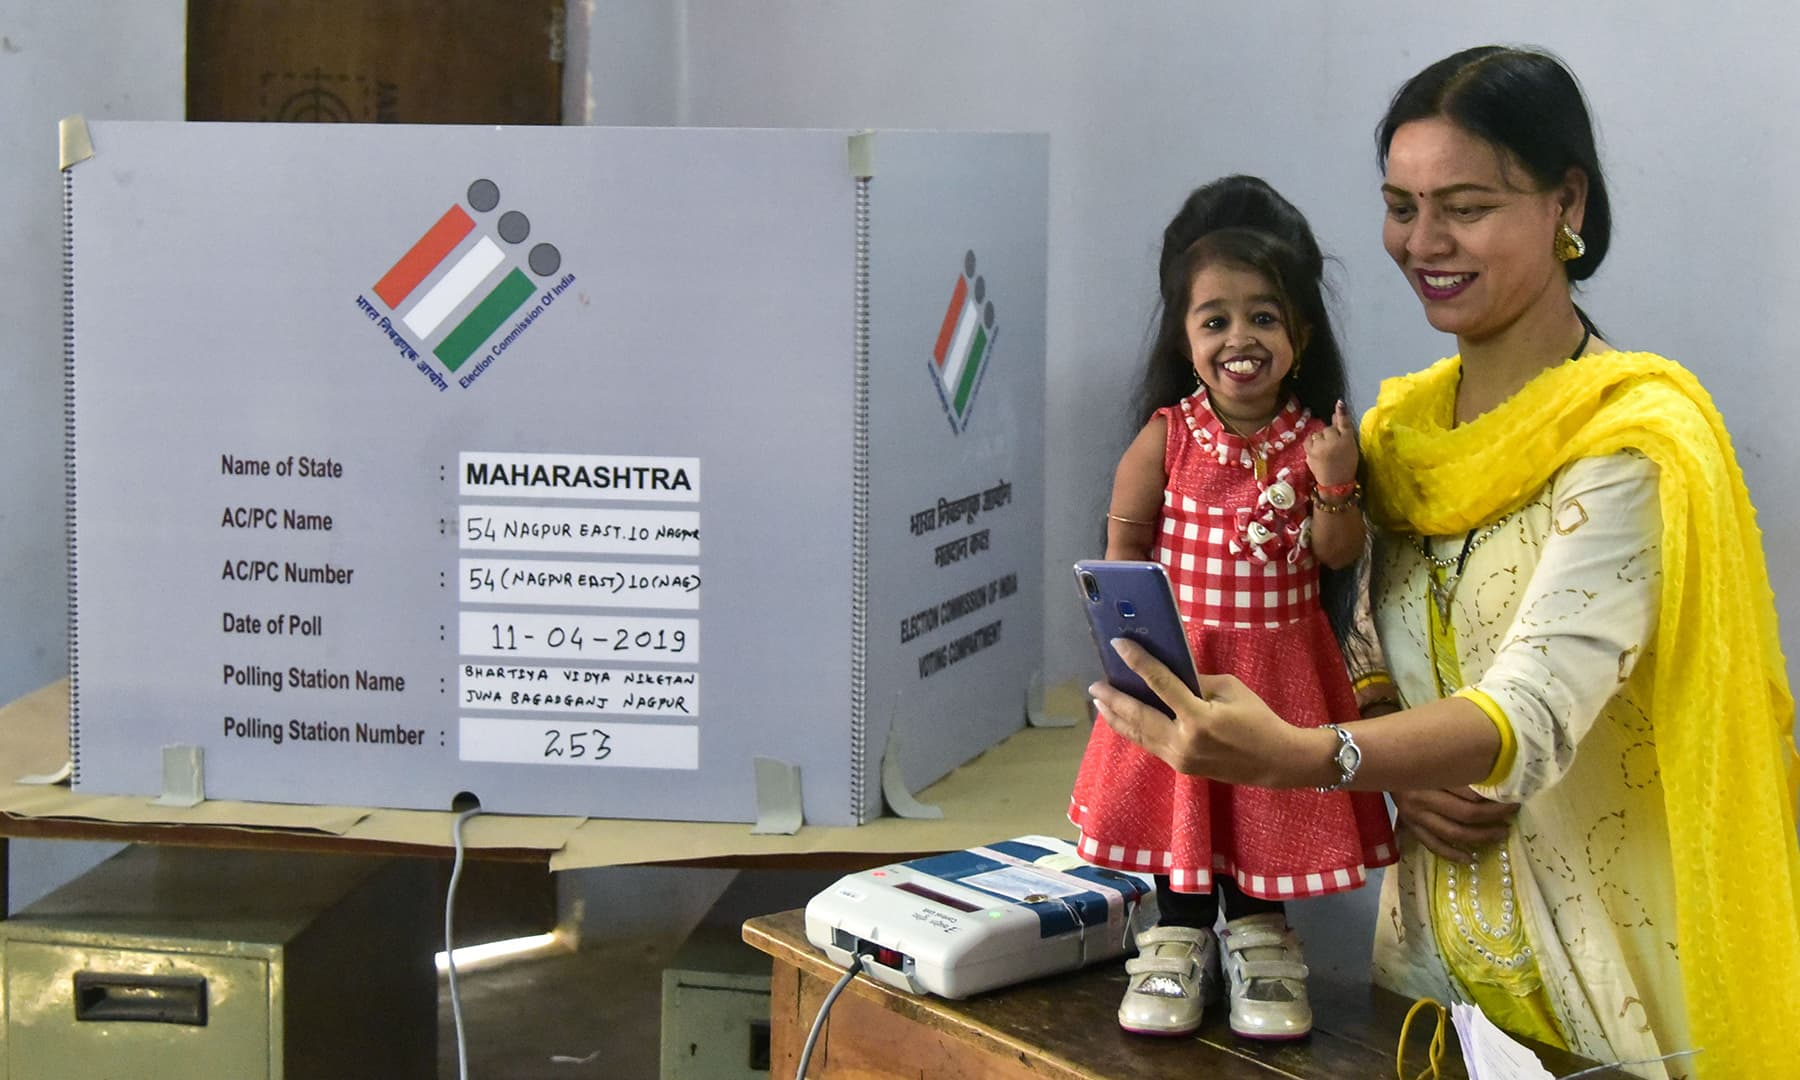 Jyoti Amge, Indian world's smallest woman, casts her vote for the first phase of India's general election at a polling station in Nagpur on April 11, 2019. — AFP